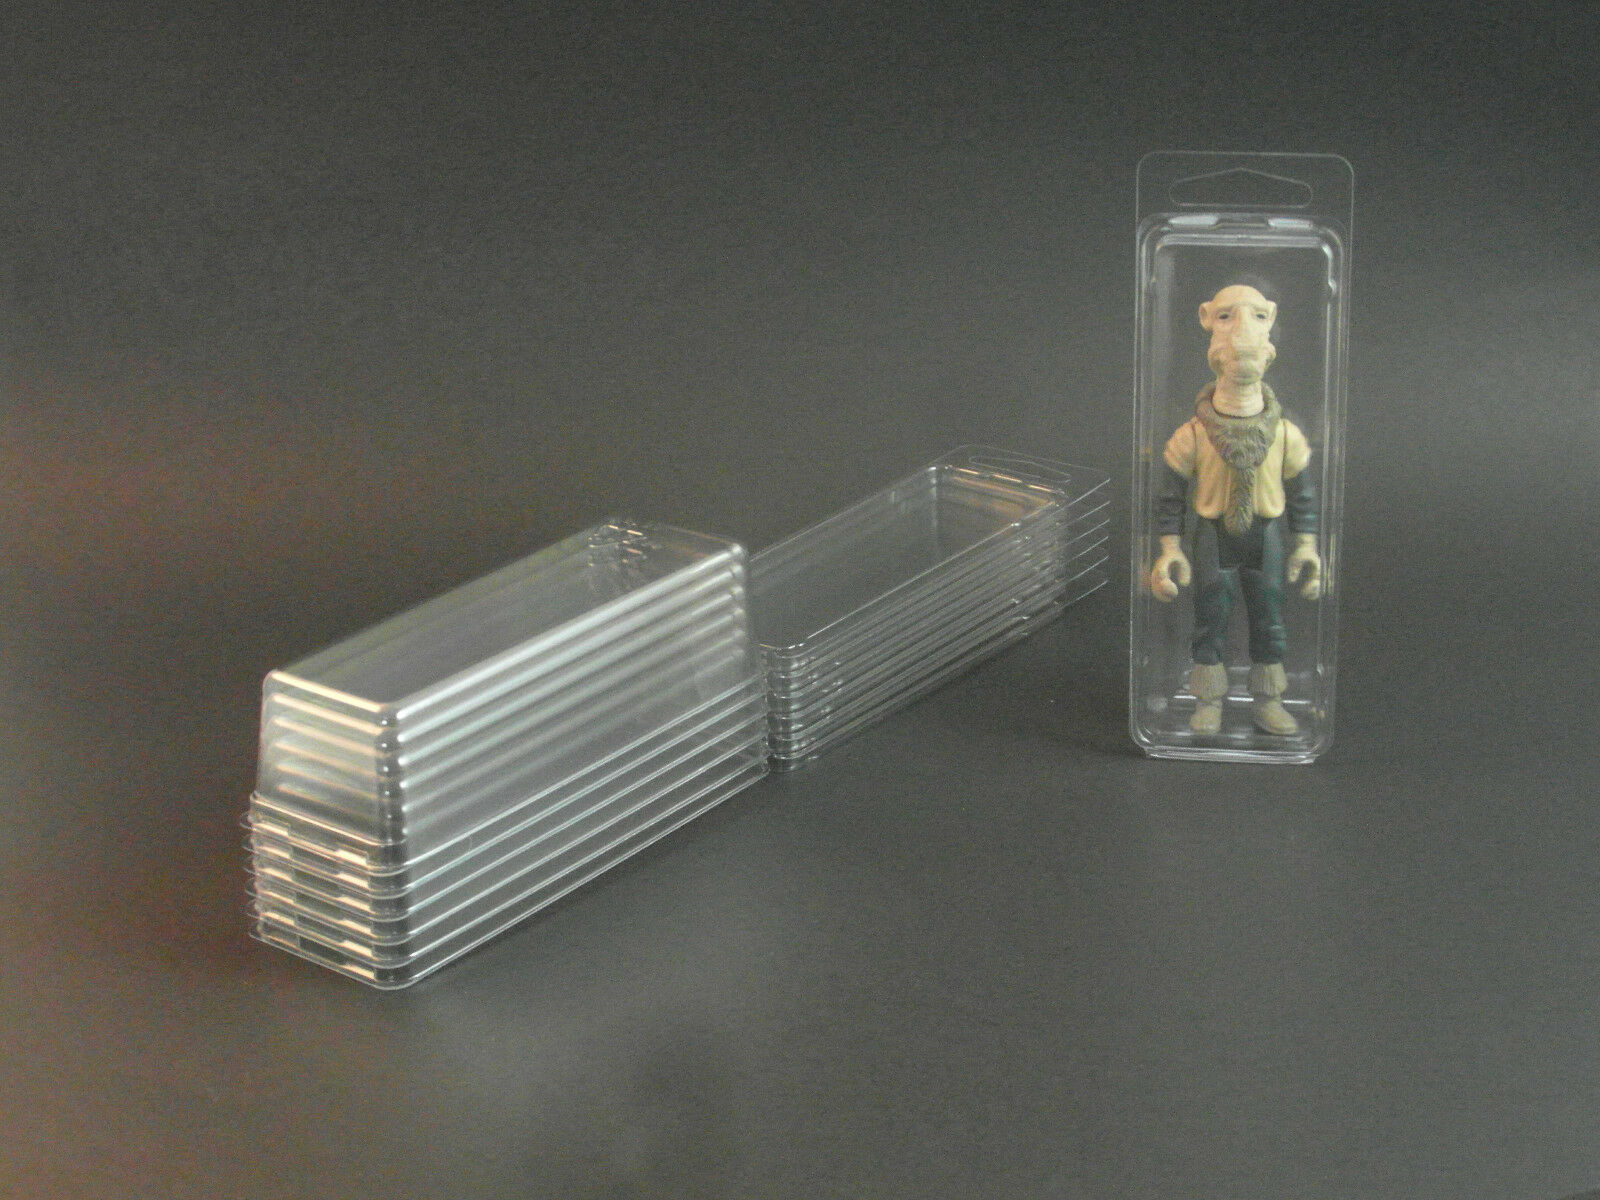 STAR WARS BLISTER CASE - 300 Action Figure Protective Clamshell - SMALL GI Joe